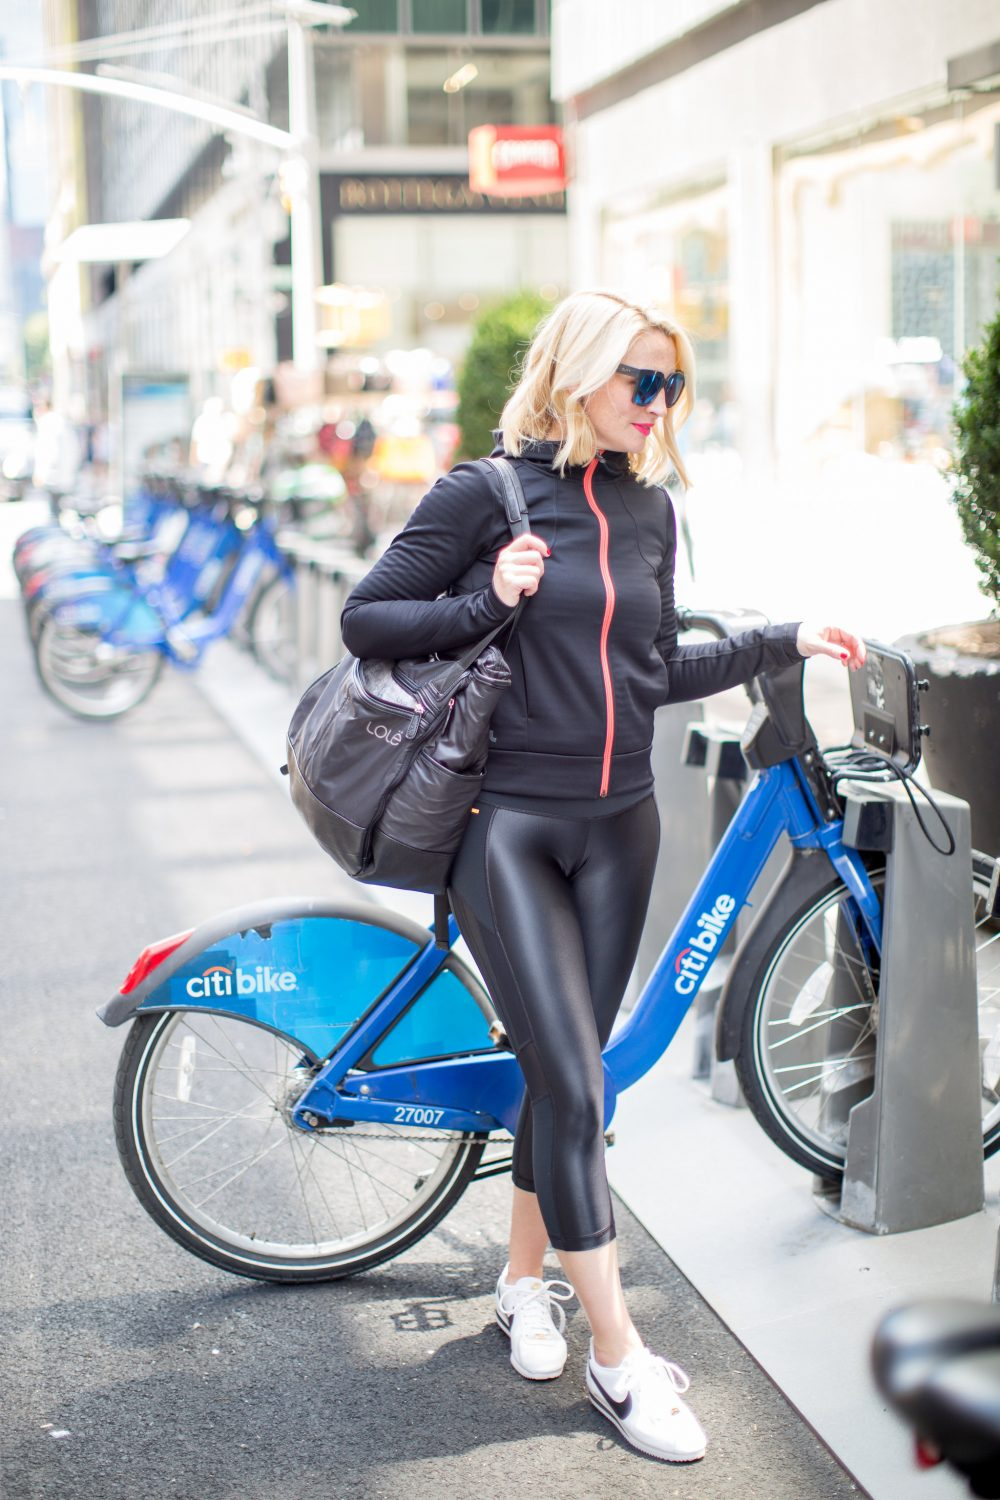 How to stay fit in NYC by Kate Brennan: Where to work out, healthy eating, & more